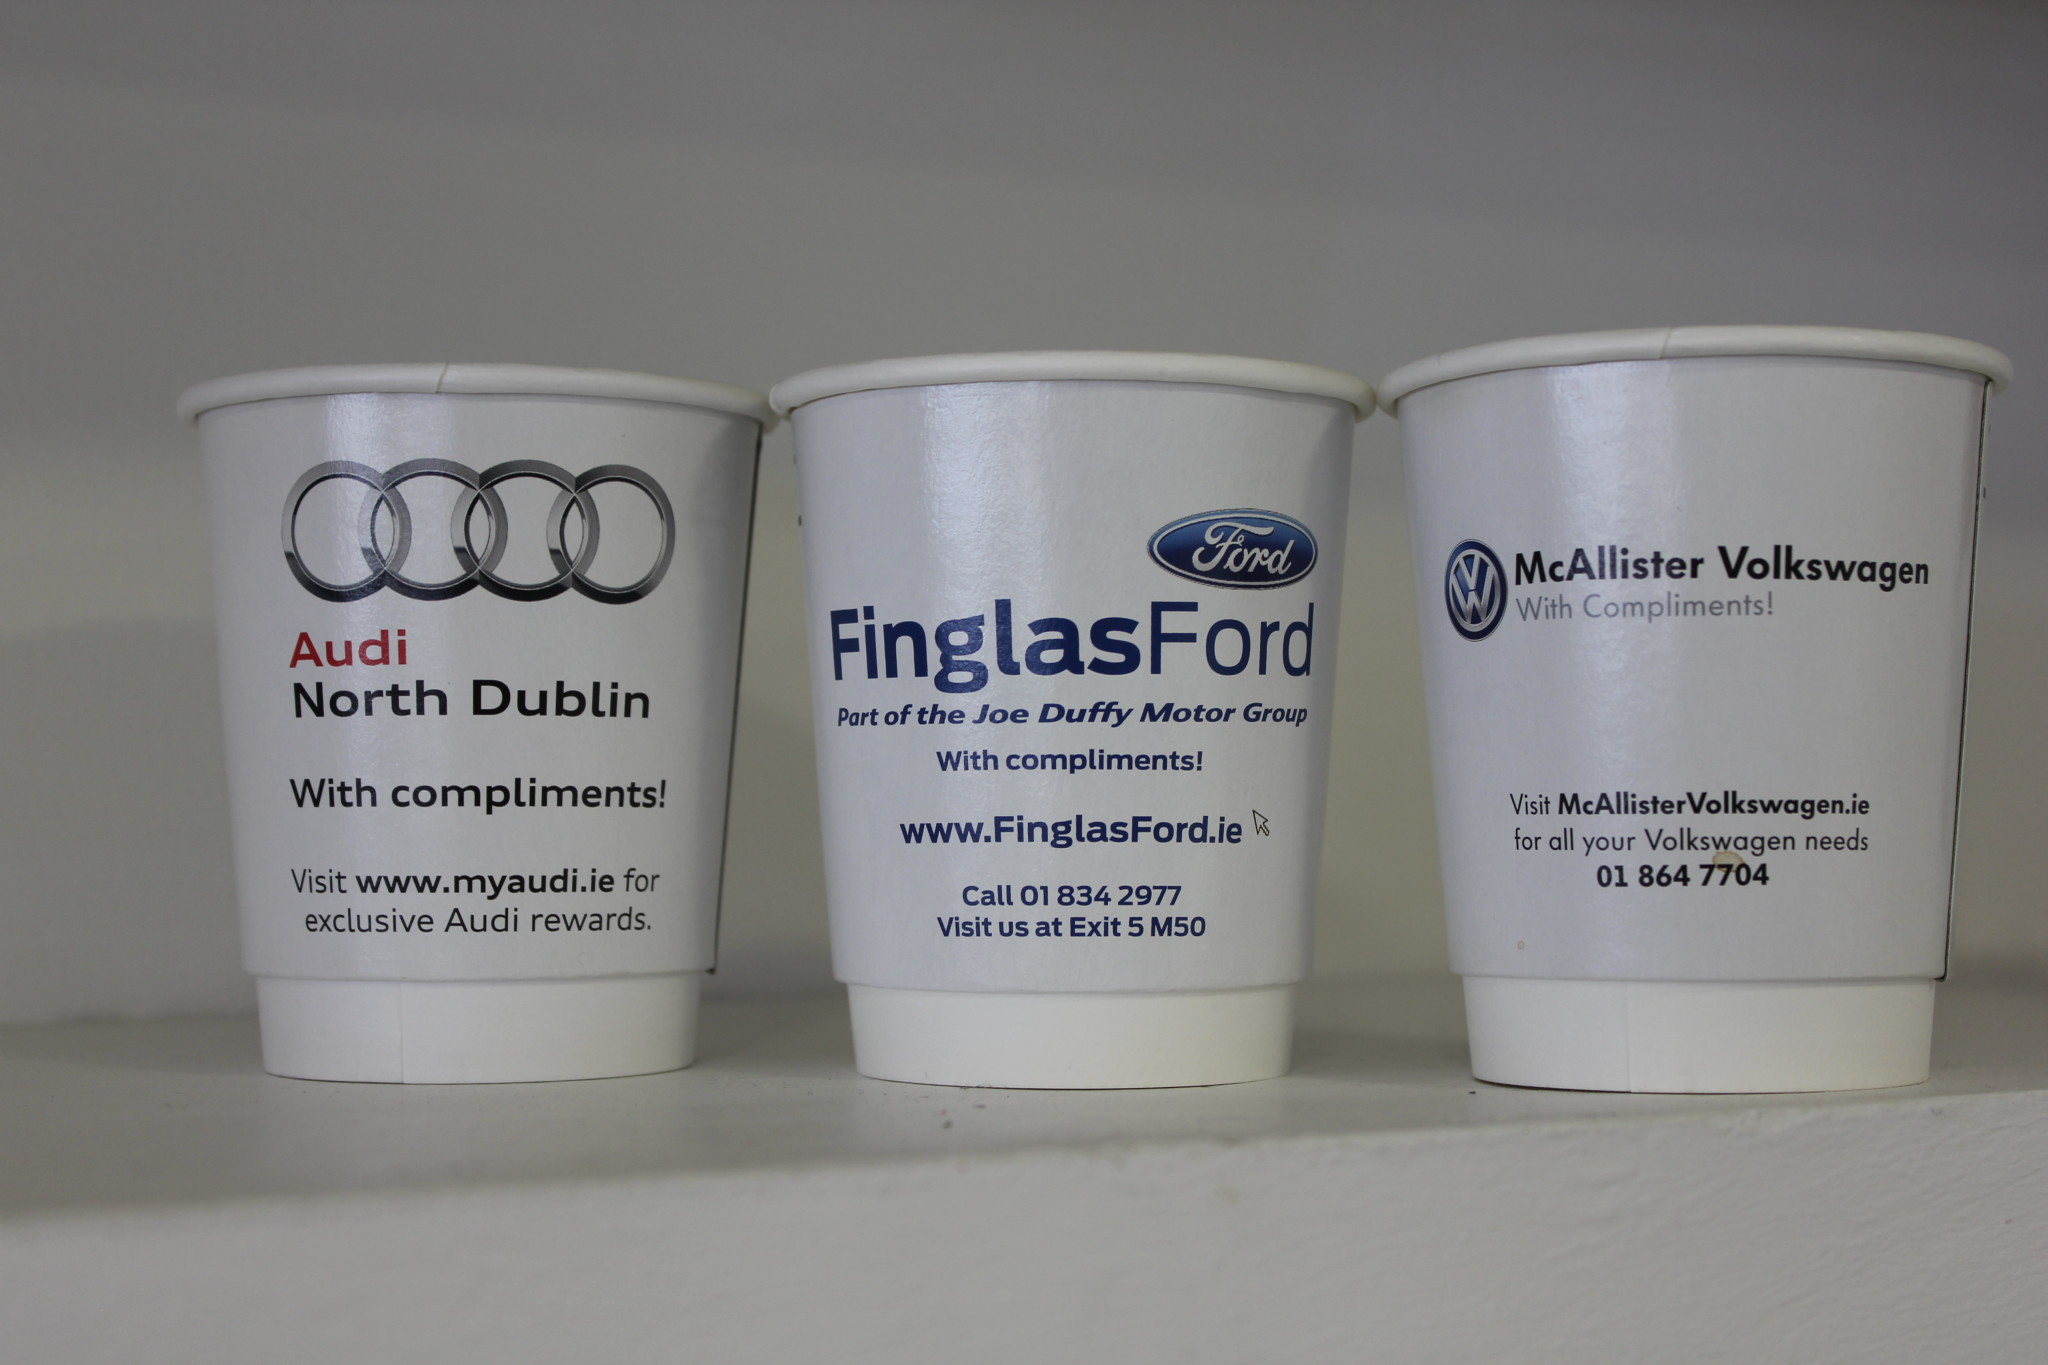 bespoke-printed-coffee-cup-designs Branded Paper Cups